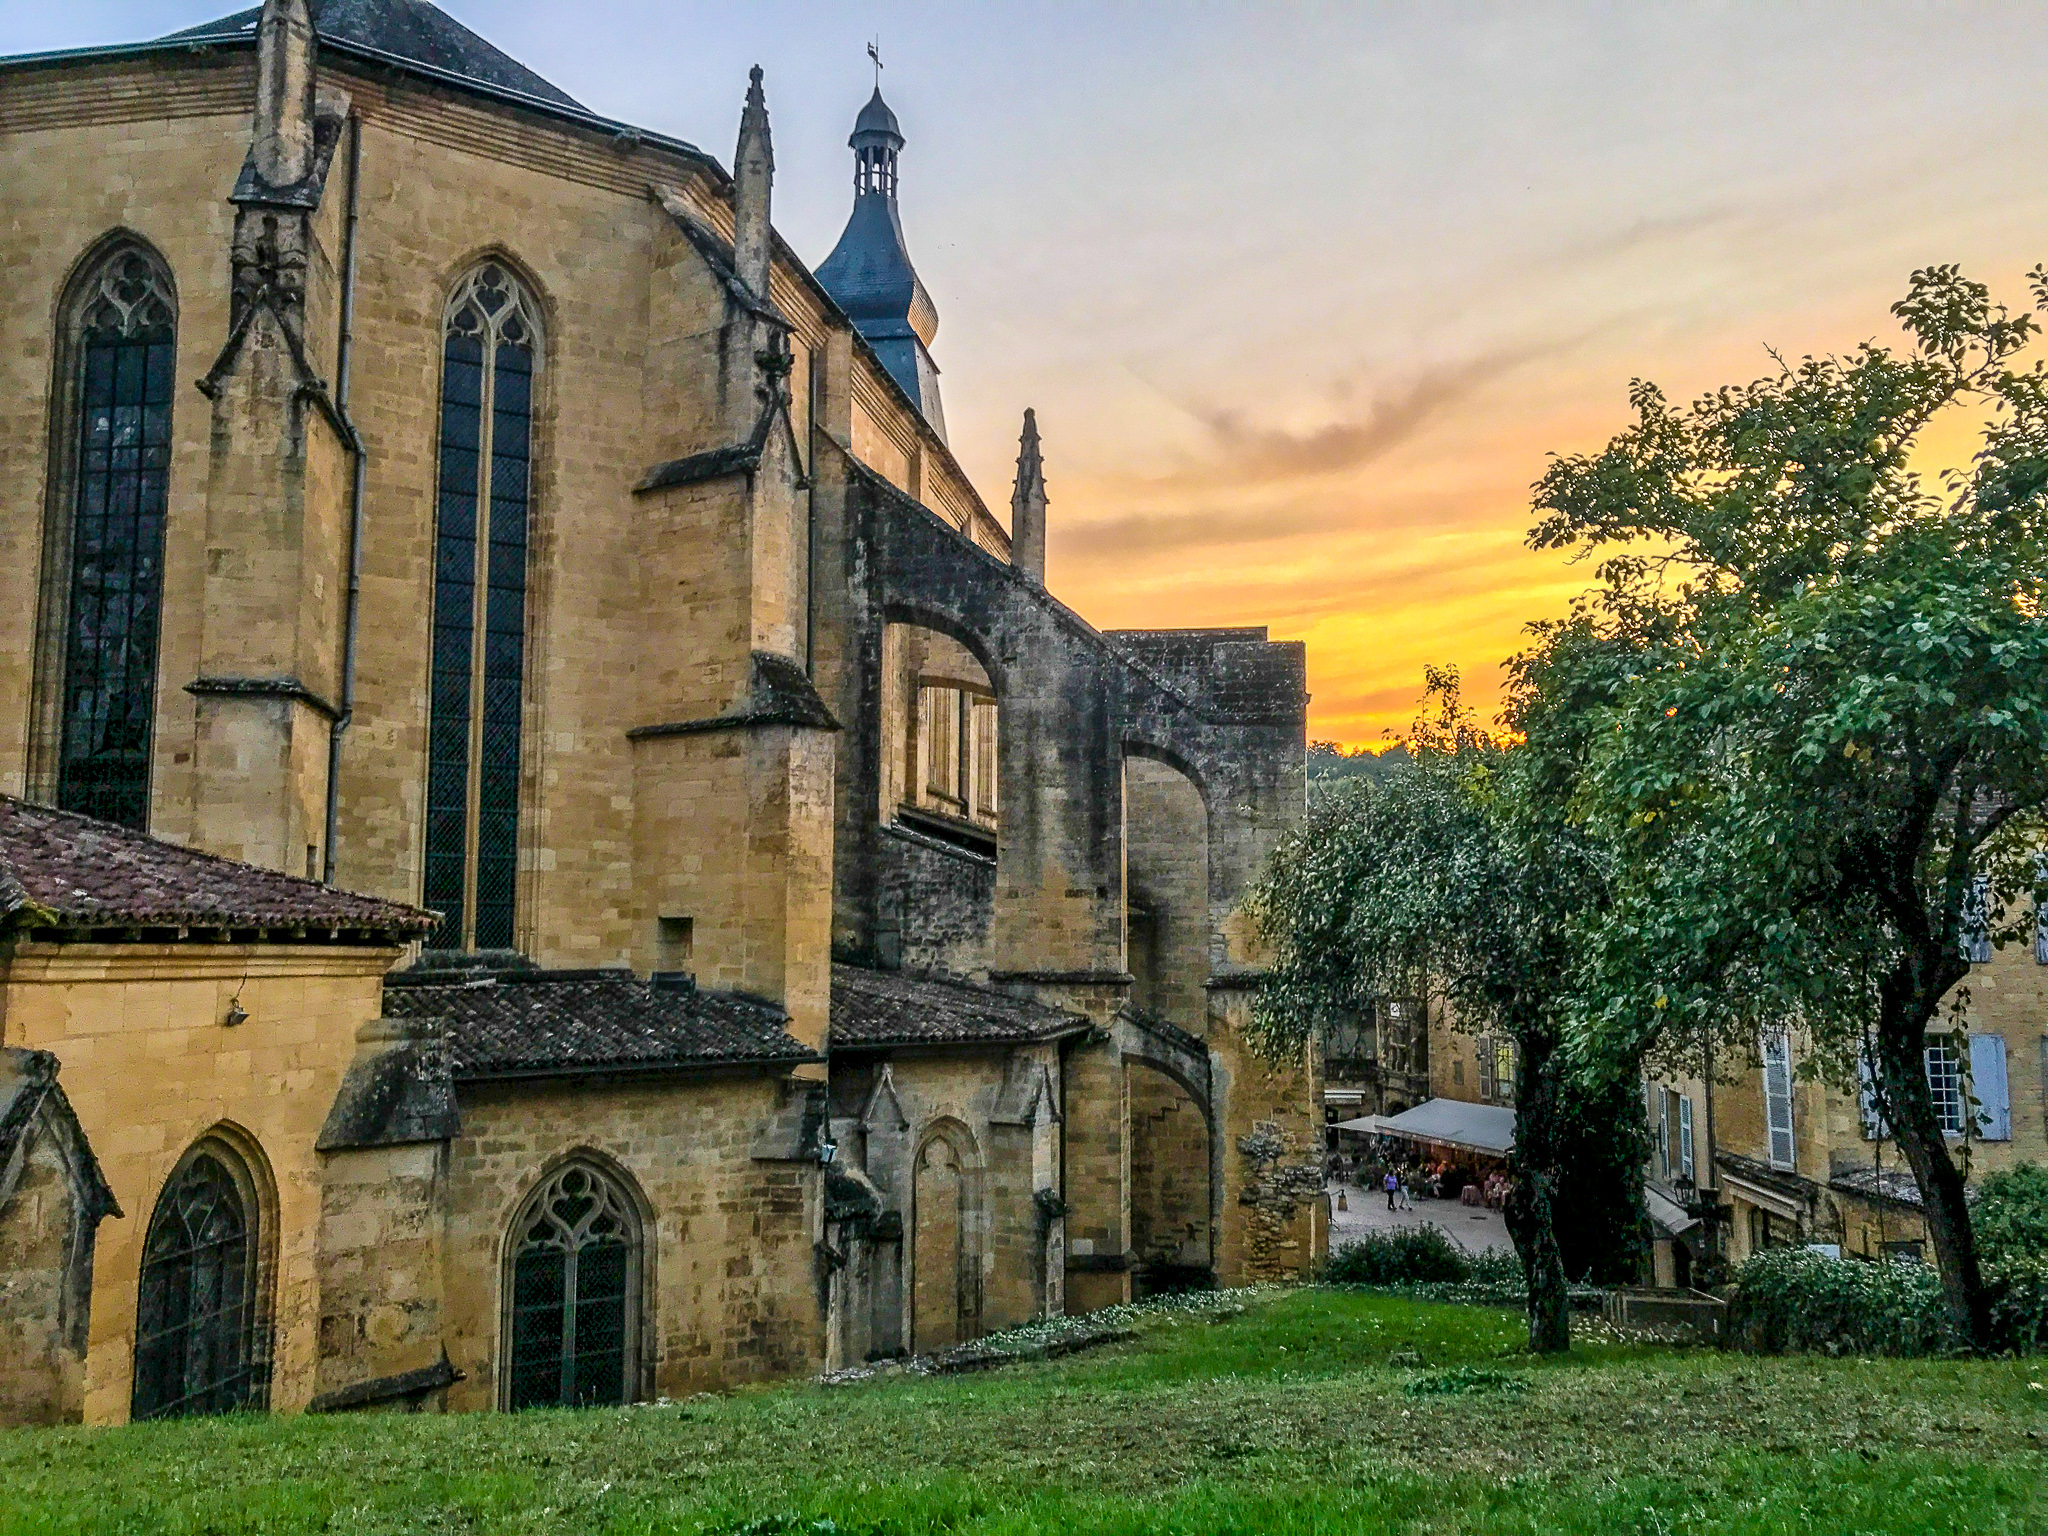 Sarlat at Dusk.jpg